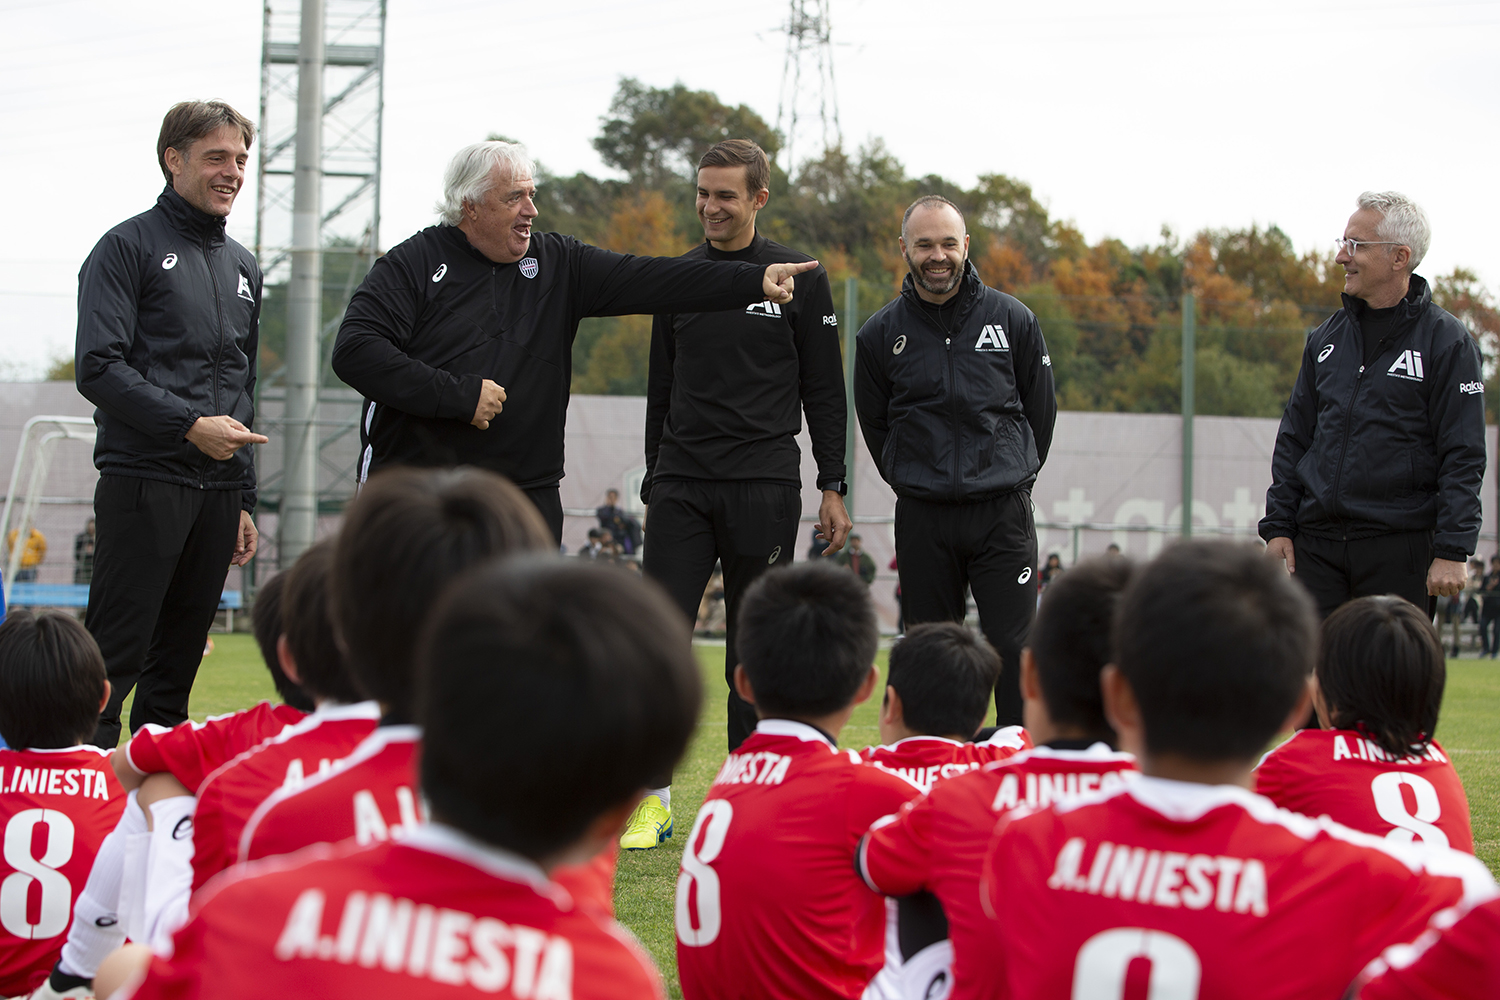 Emili Ricart (far right) was joined by Iniesta's Methodology camp coaches Marcos Vives, Top Team Assistant Coach, Vissel Kobe (far left), and Albert Benaiges, Academy Advisor, Vissel Kobe (second from left), as well as Iniesta himself.